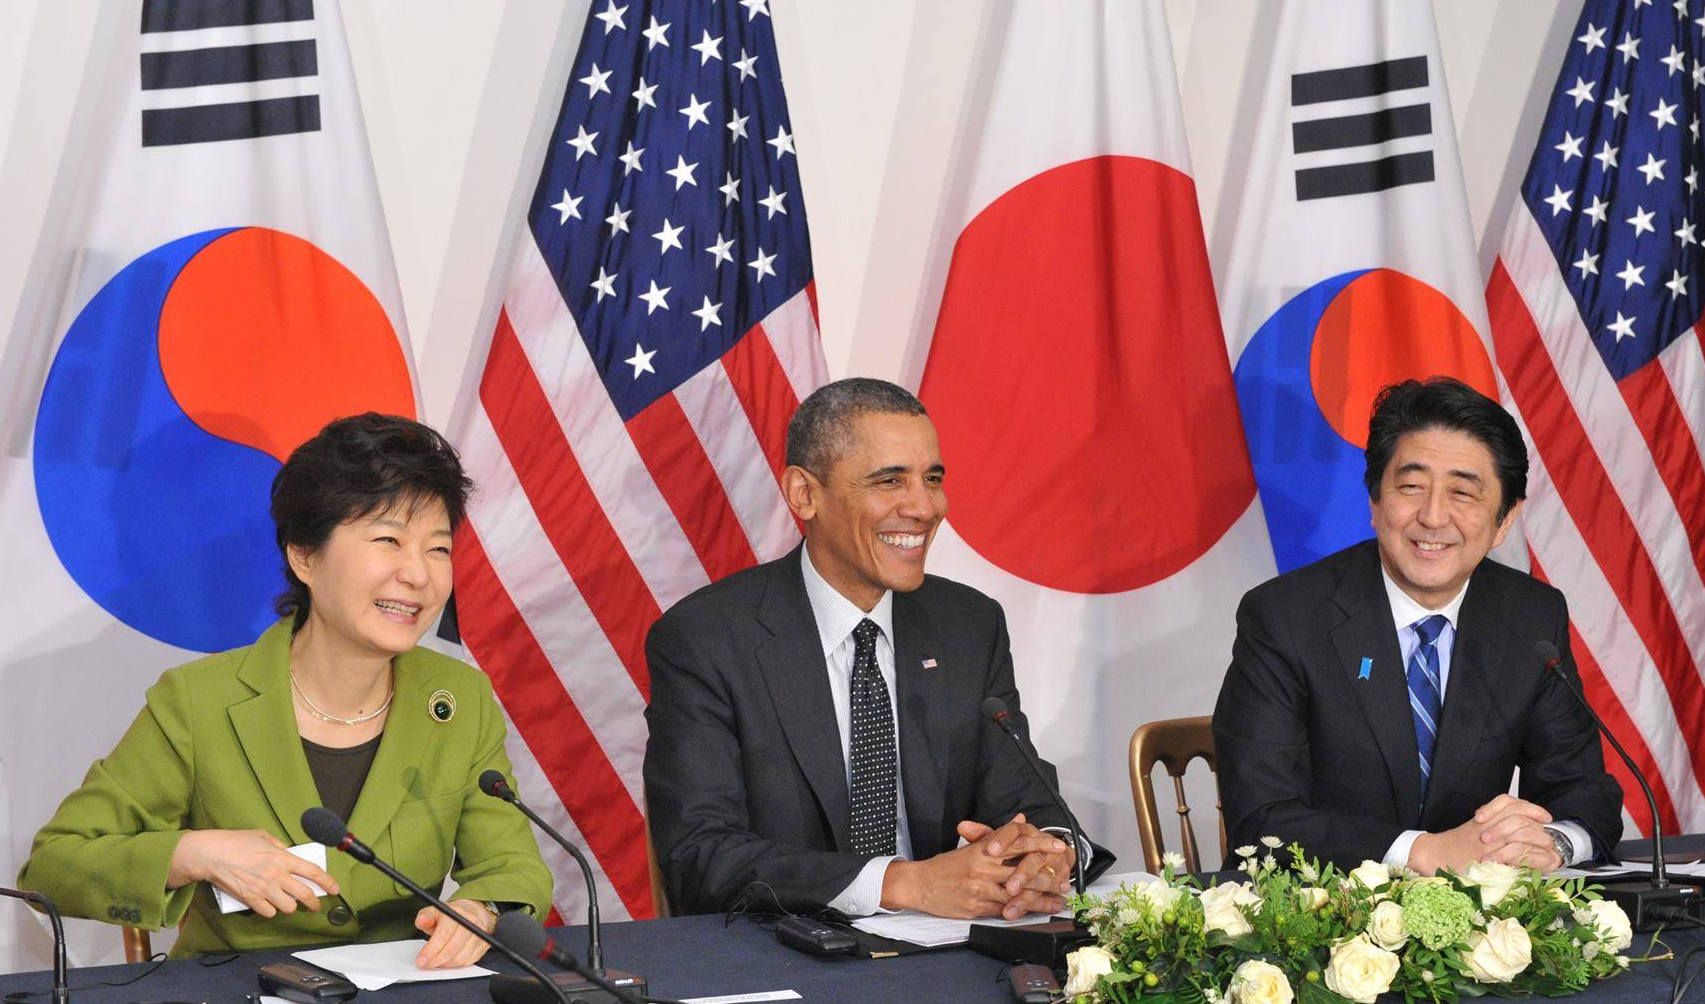 South Korean President Park Geun-hye, U.S. President Barack Obama and Japanese Prime Minister Shinzo Abe hold a trilateral summit in March 2015. Japan Prime Minister's Office Photo